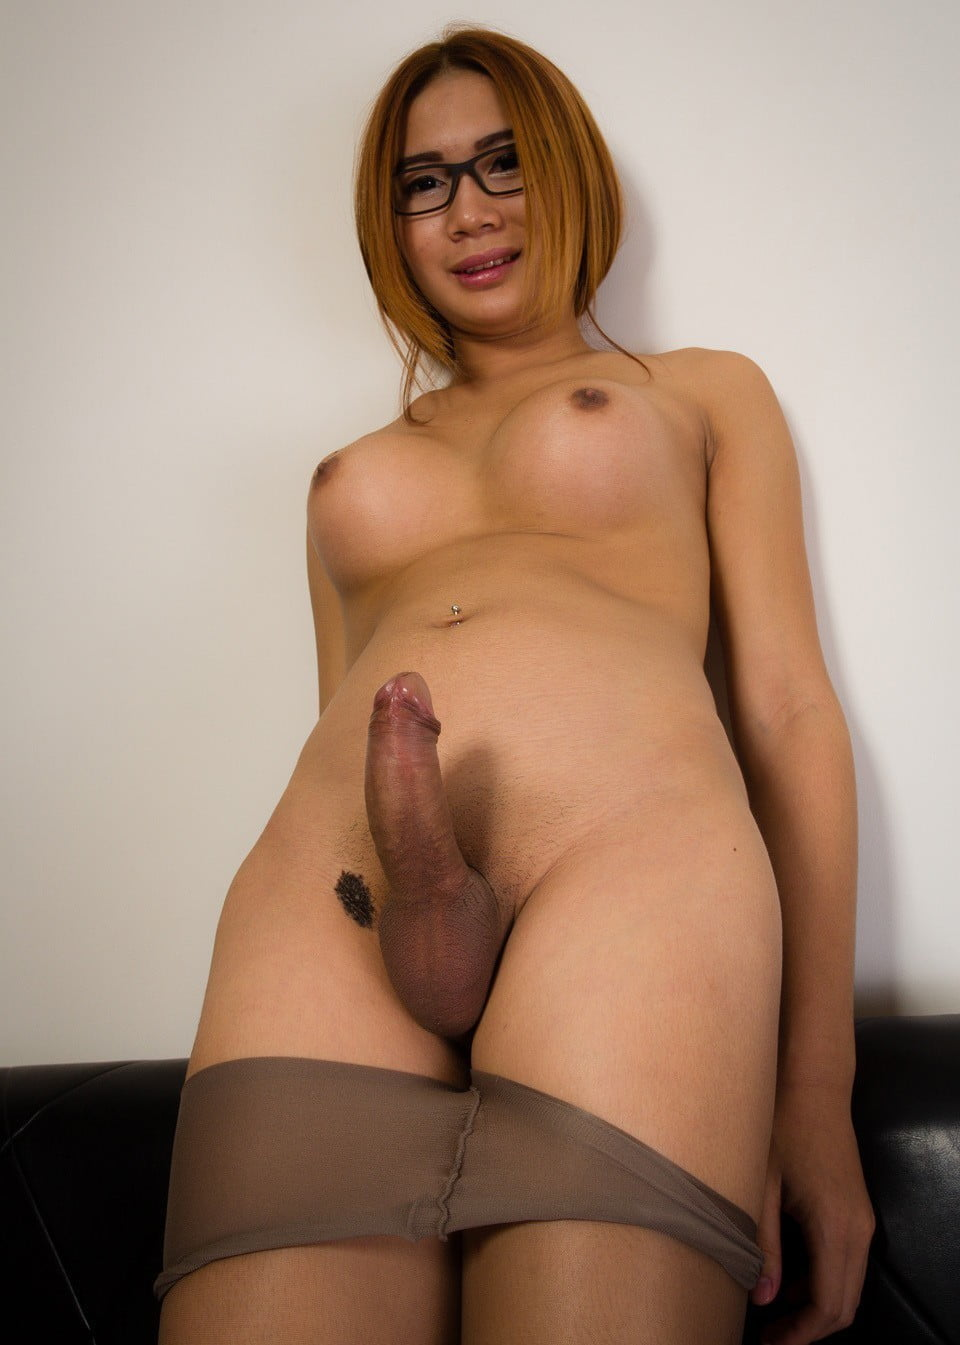 porno bite escort girl drome